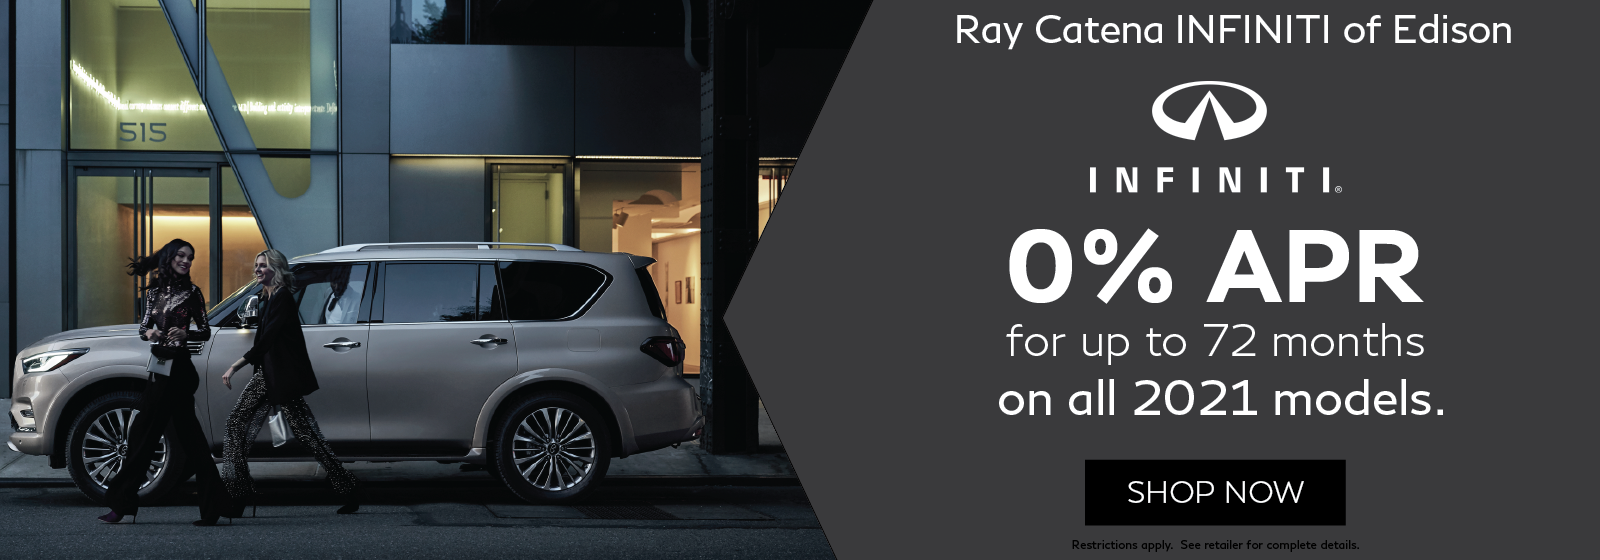 Women walking in front of an INFINITI QX80. Ray Catena INFINITI of Edison. 0% APR for up to 72 months on all 2021 models. Restricitions apply, see retailer for complete details. Shop now.